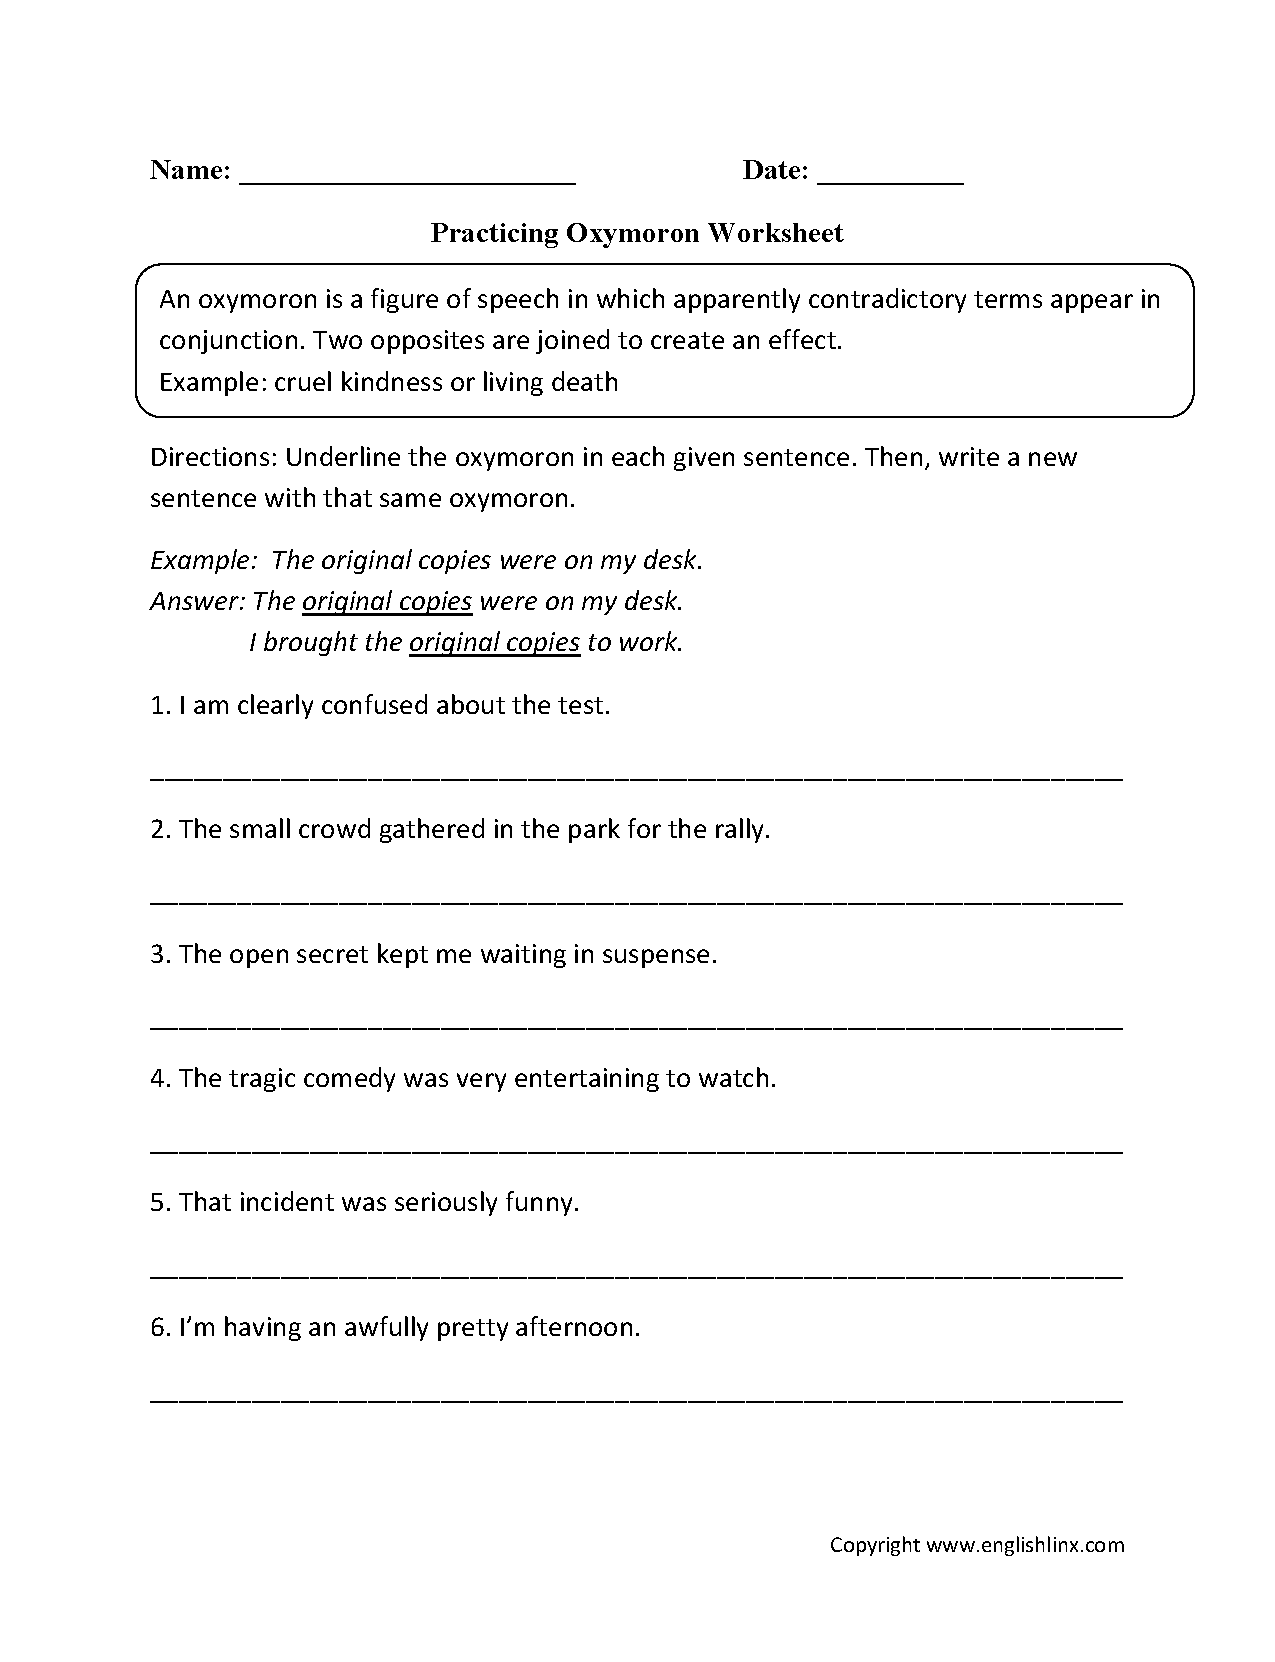 Practicing Onomatopoeia Worksheet